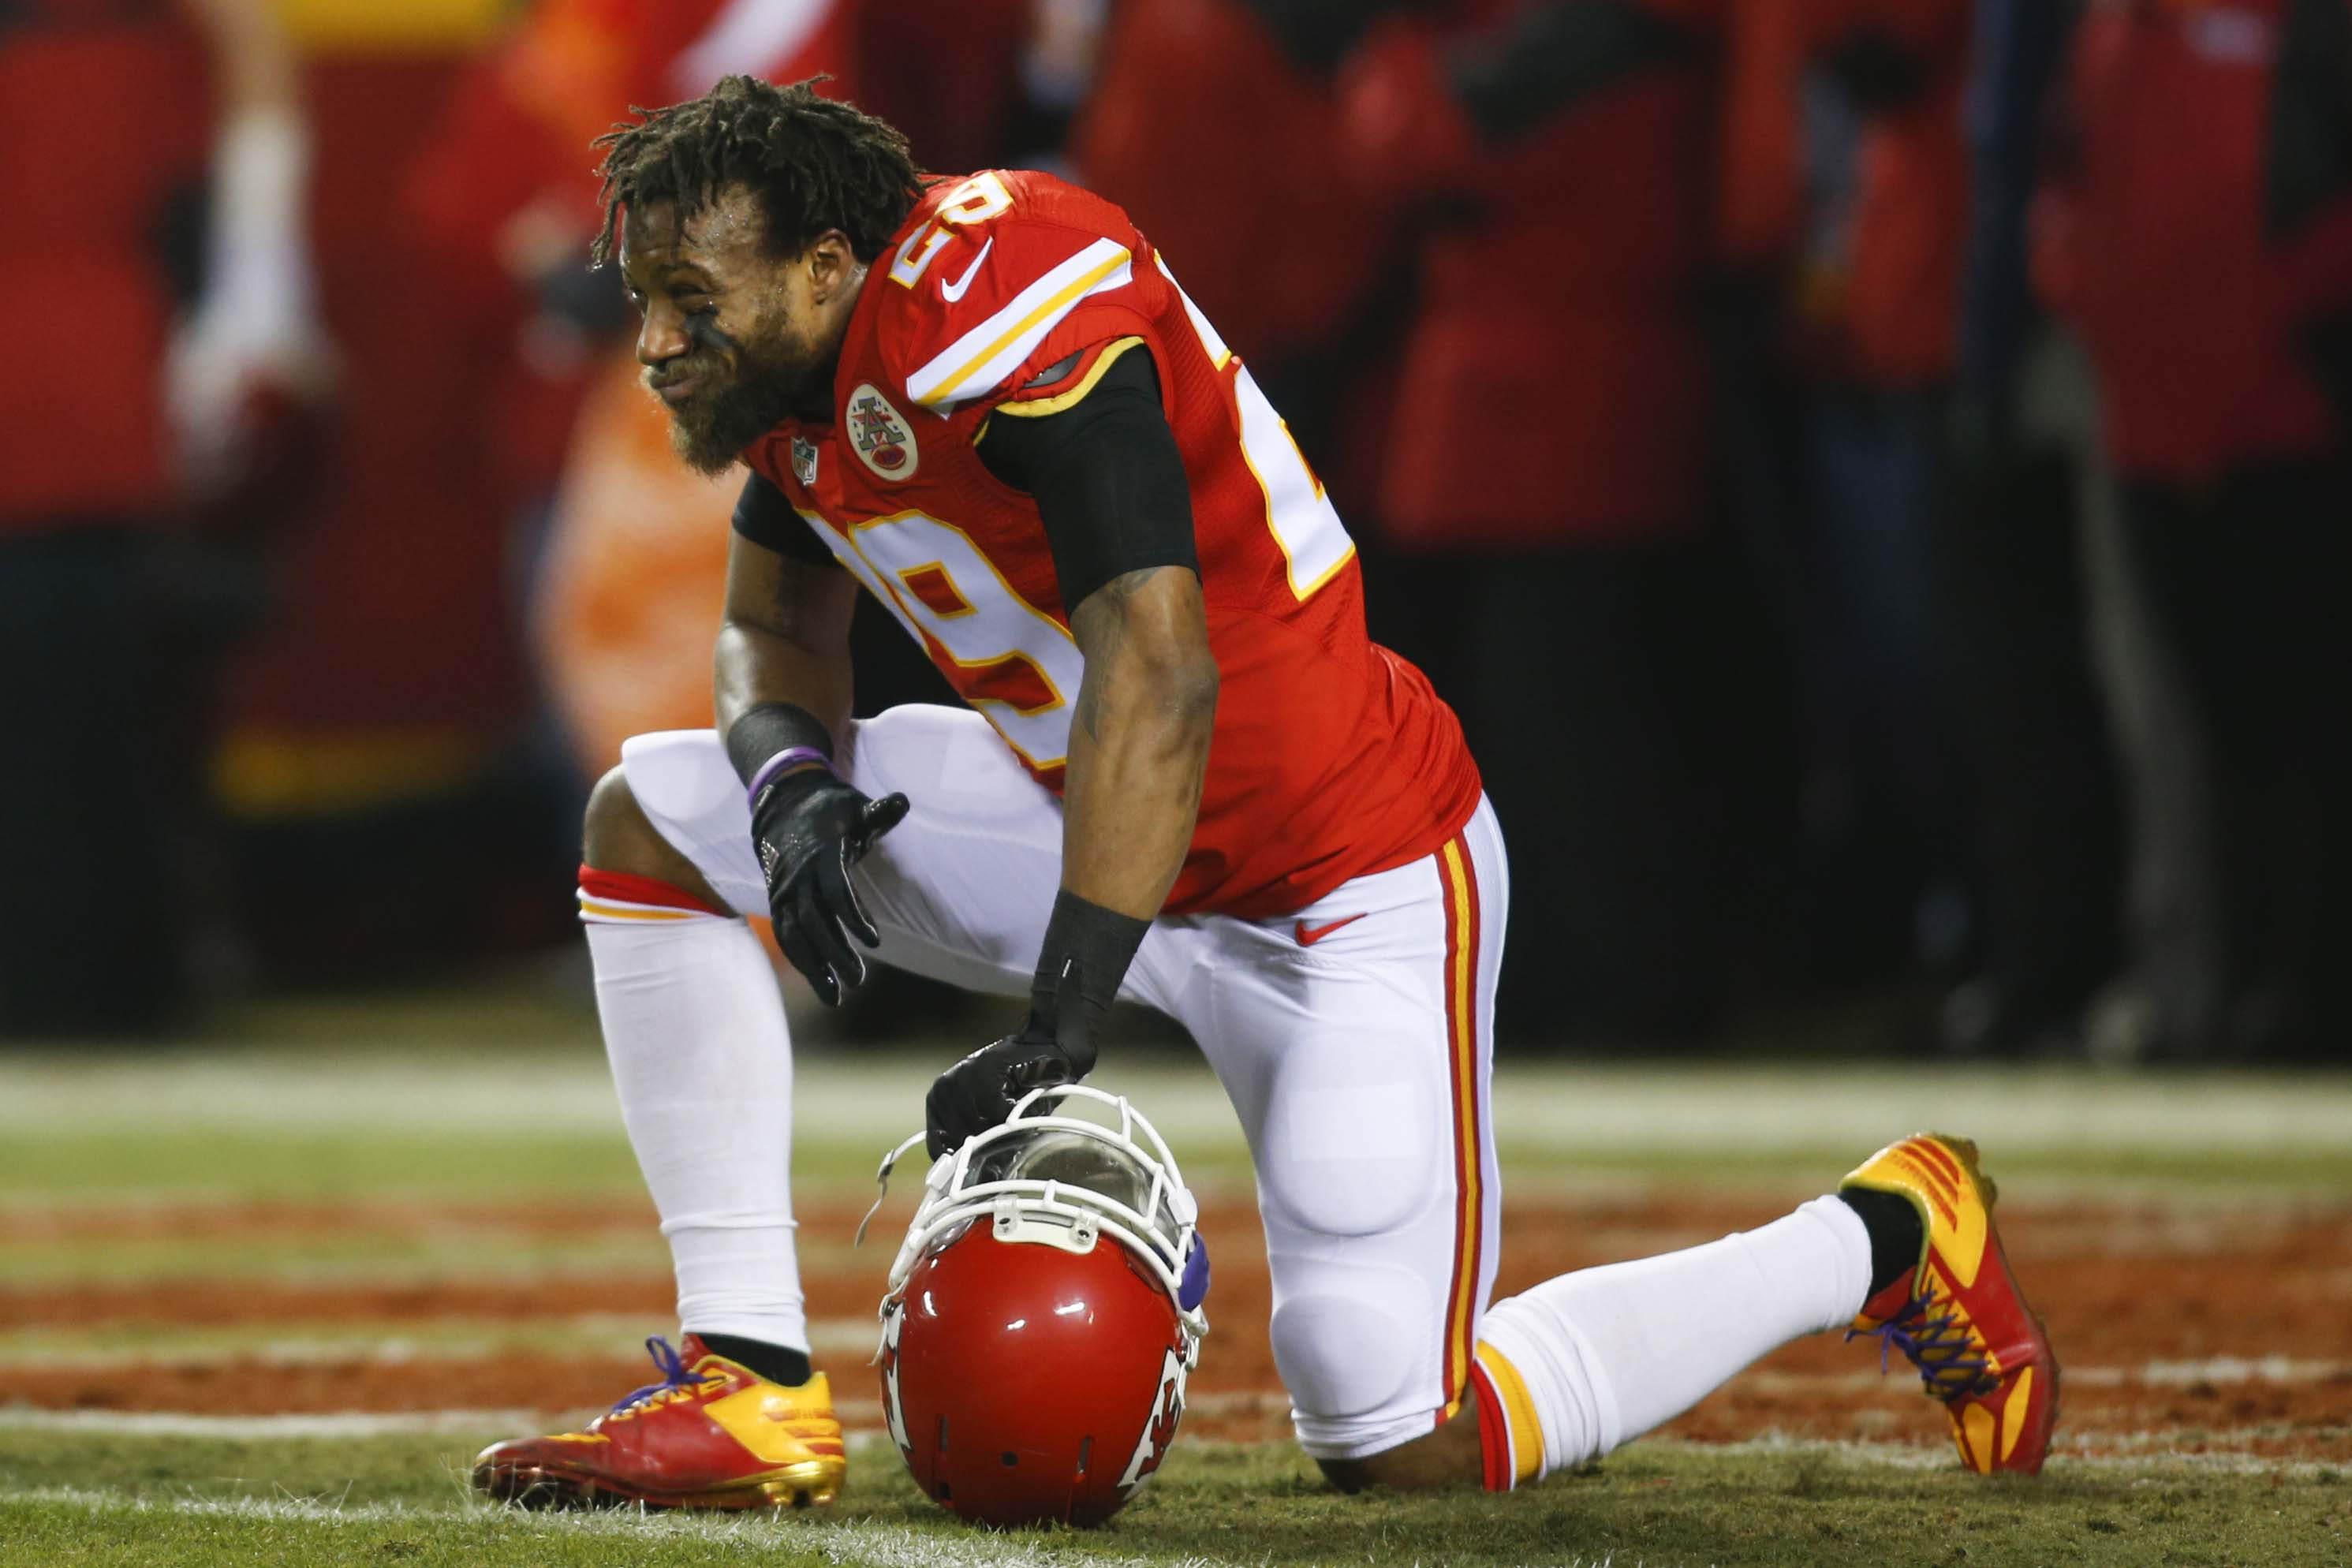 Bears must look elsewhere for safety as Eric Berry signs massive deal